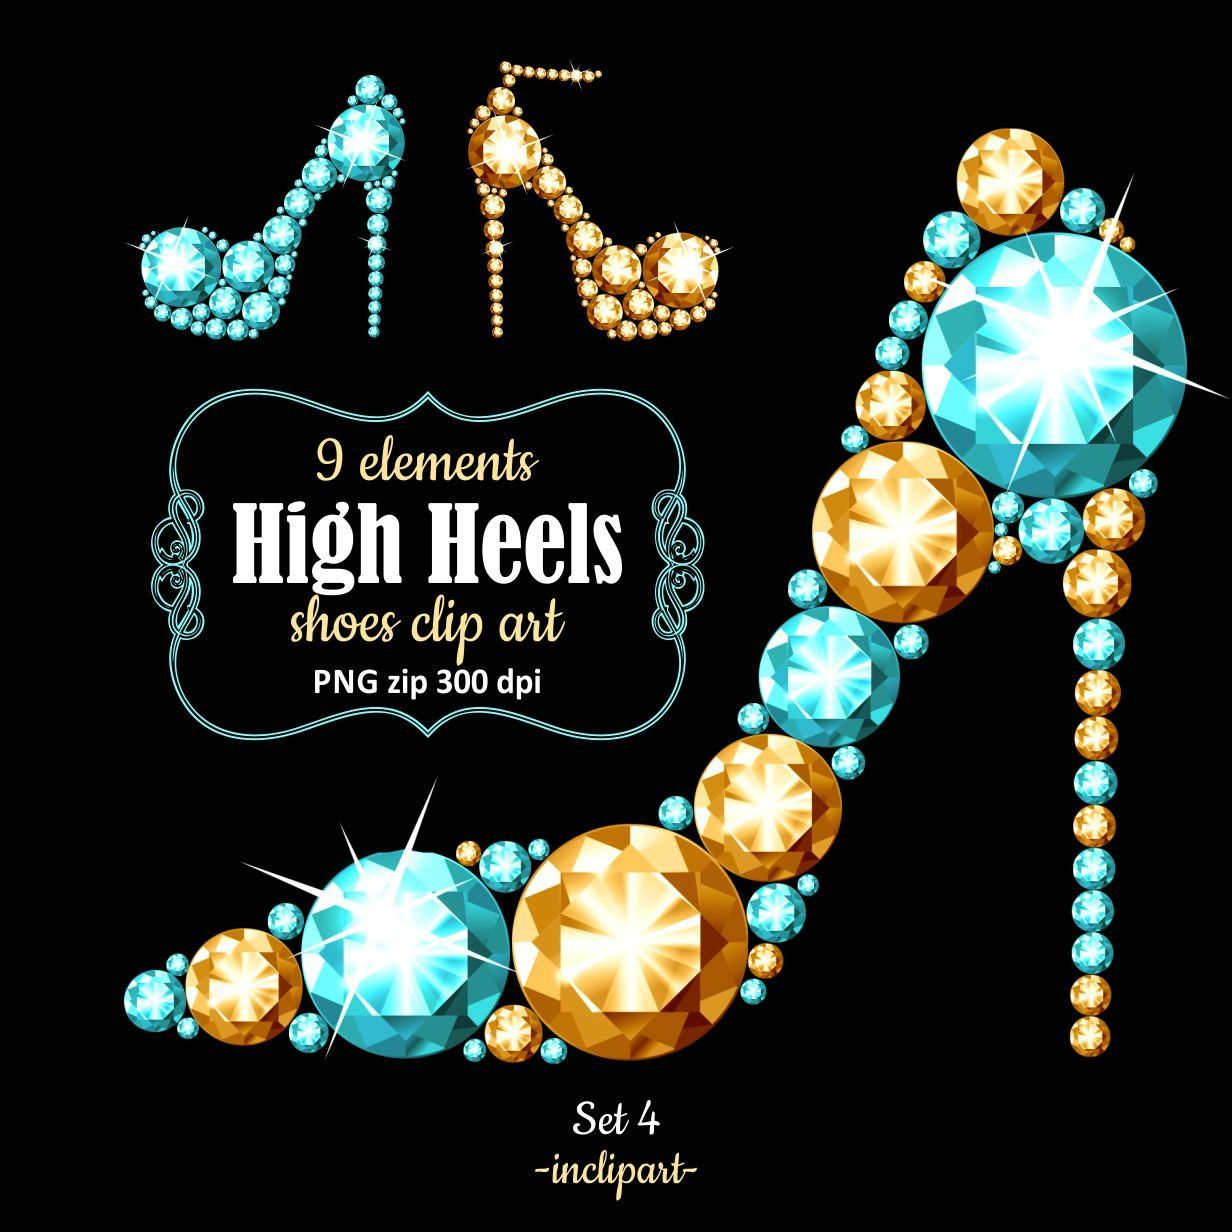 High Heel Shoes Clipart Png Format Gold Turquoise Diamond Rhinestone Shoe Clip Art Ladies Party Clipart Instant Download Business Use Shoes Clipart Rhinestone Shoes Clip Art